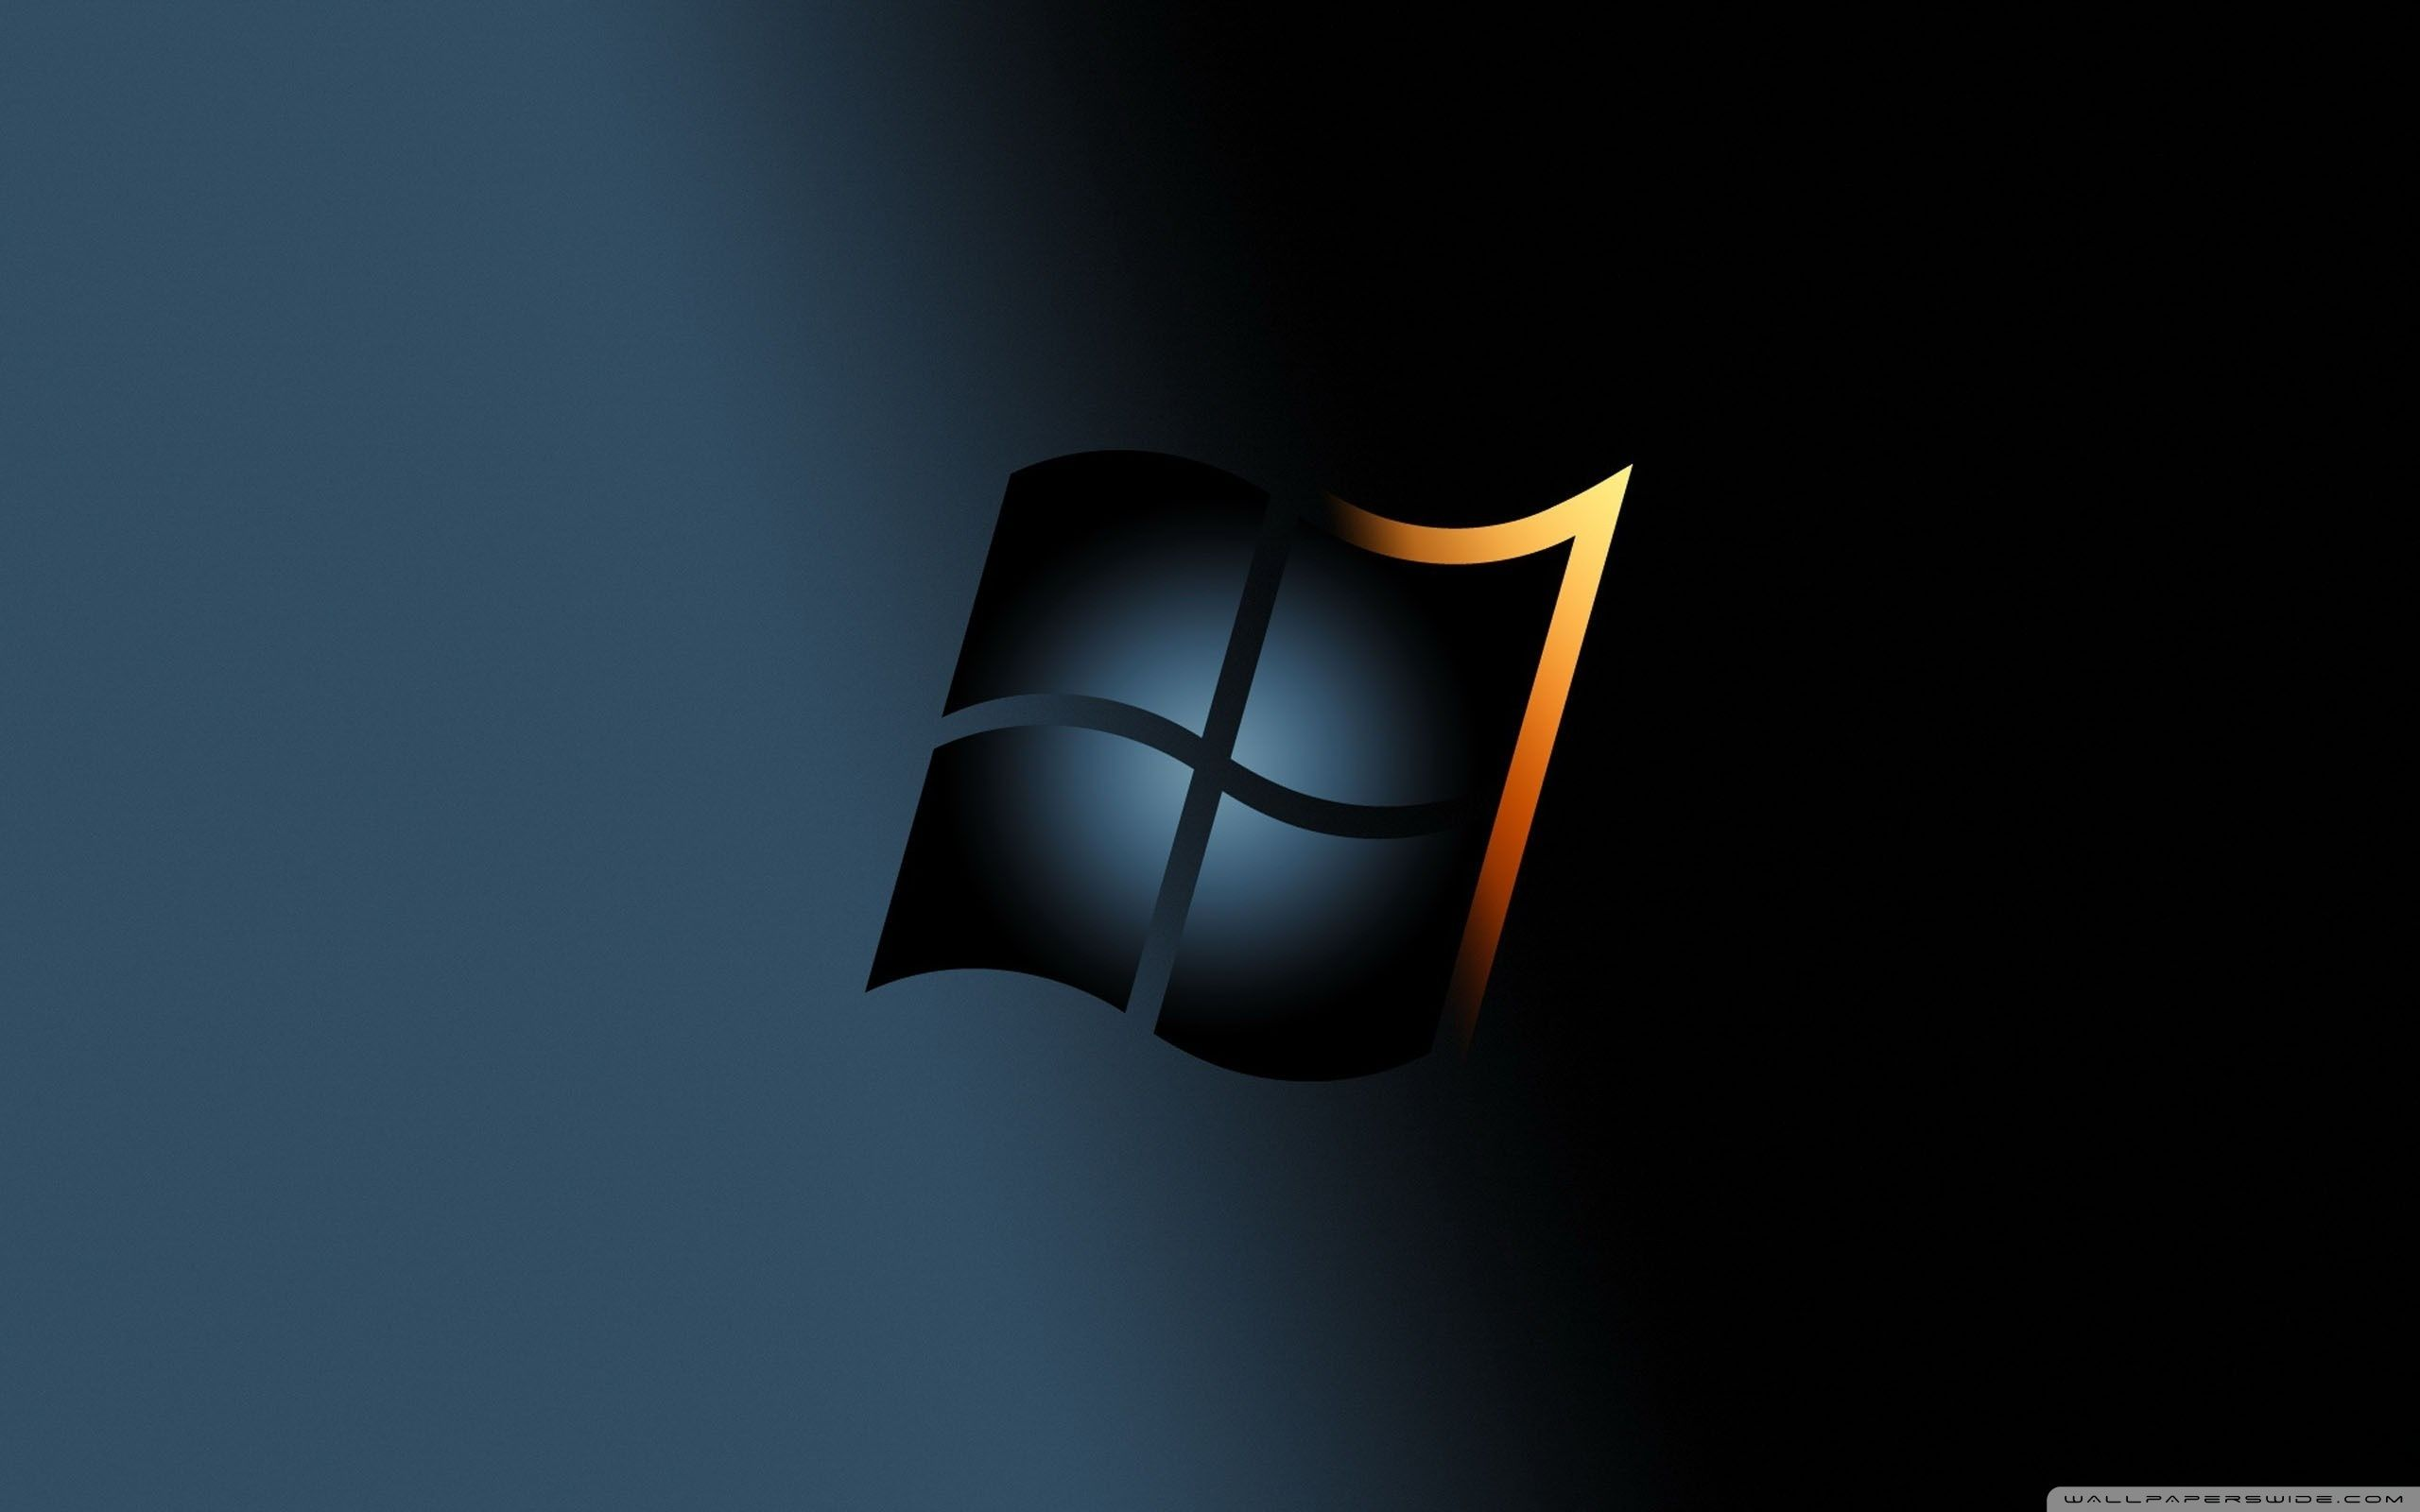 windows 7 dark hd desktop wallpaper high definition fullscreen